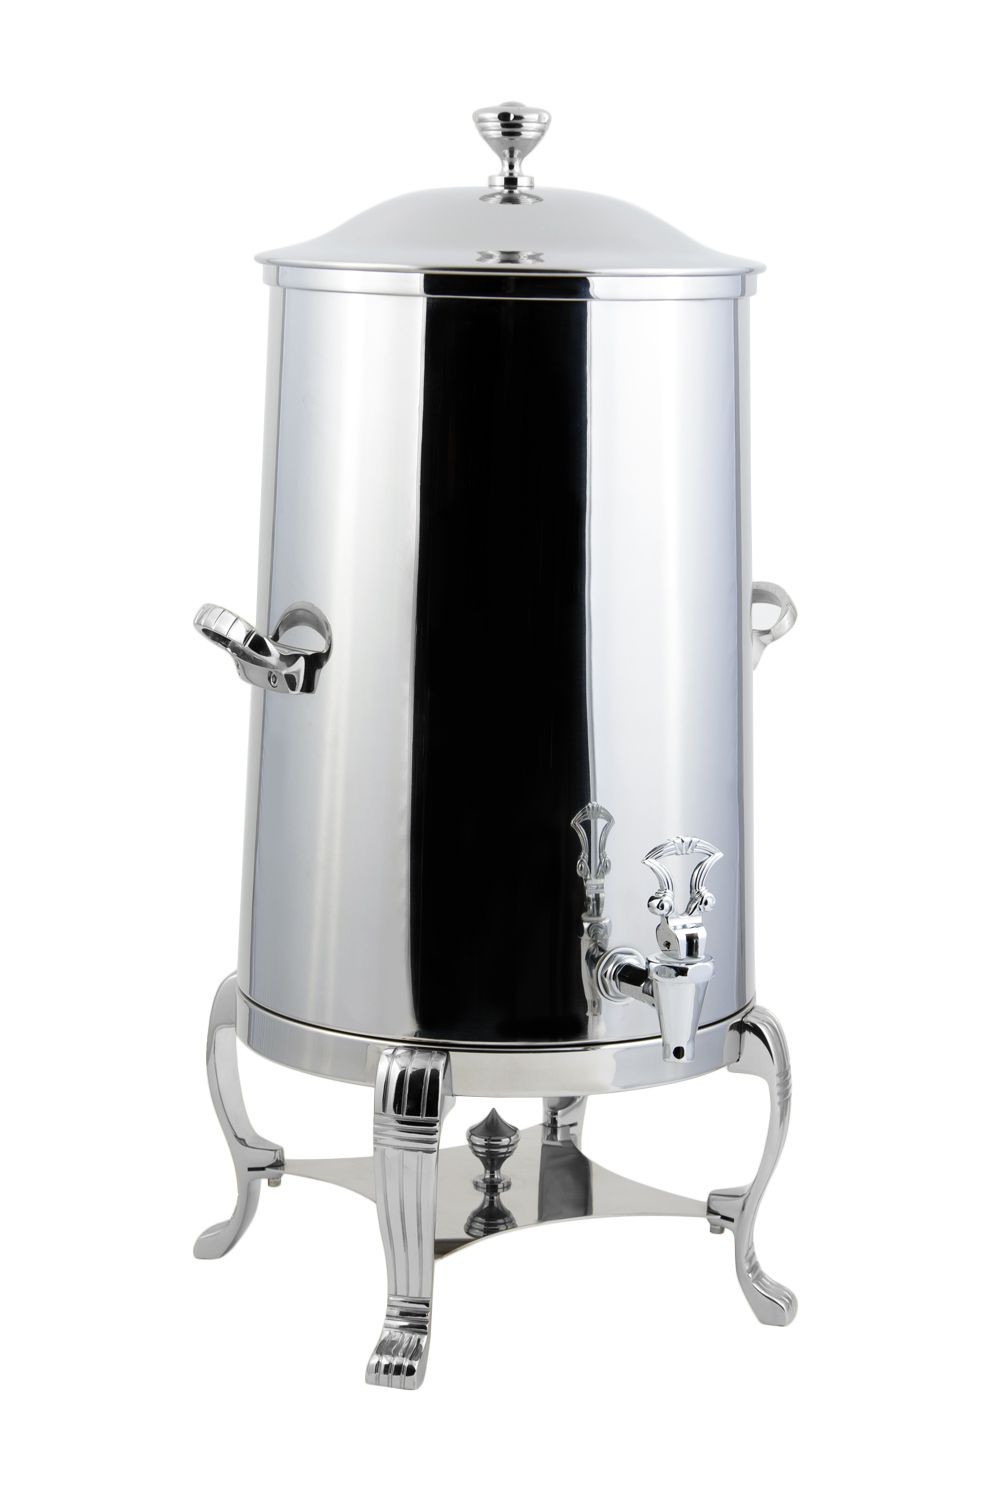 Bon Chef 40005CH Aurora Insulated Coffee Urn with Chrome Trim, 5 Gallon